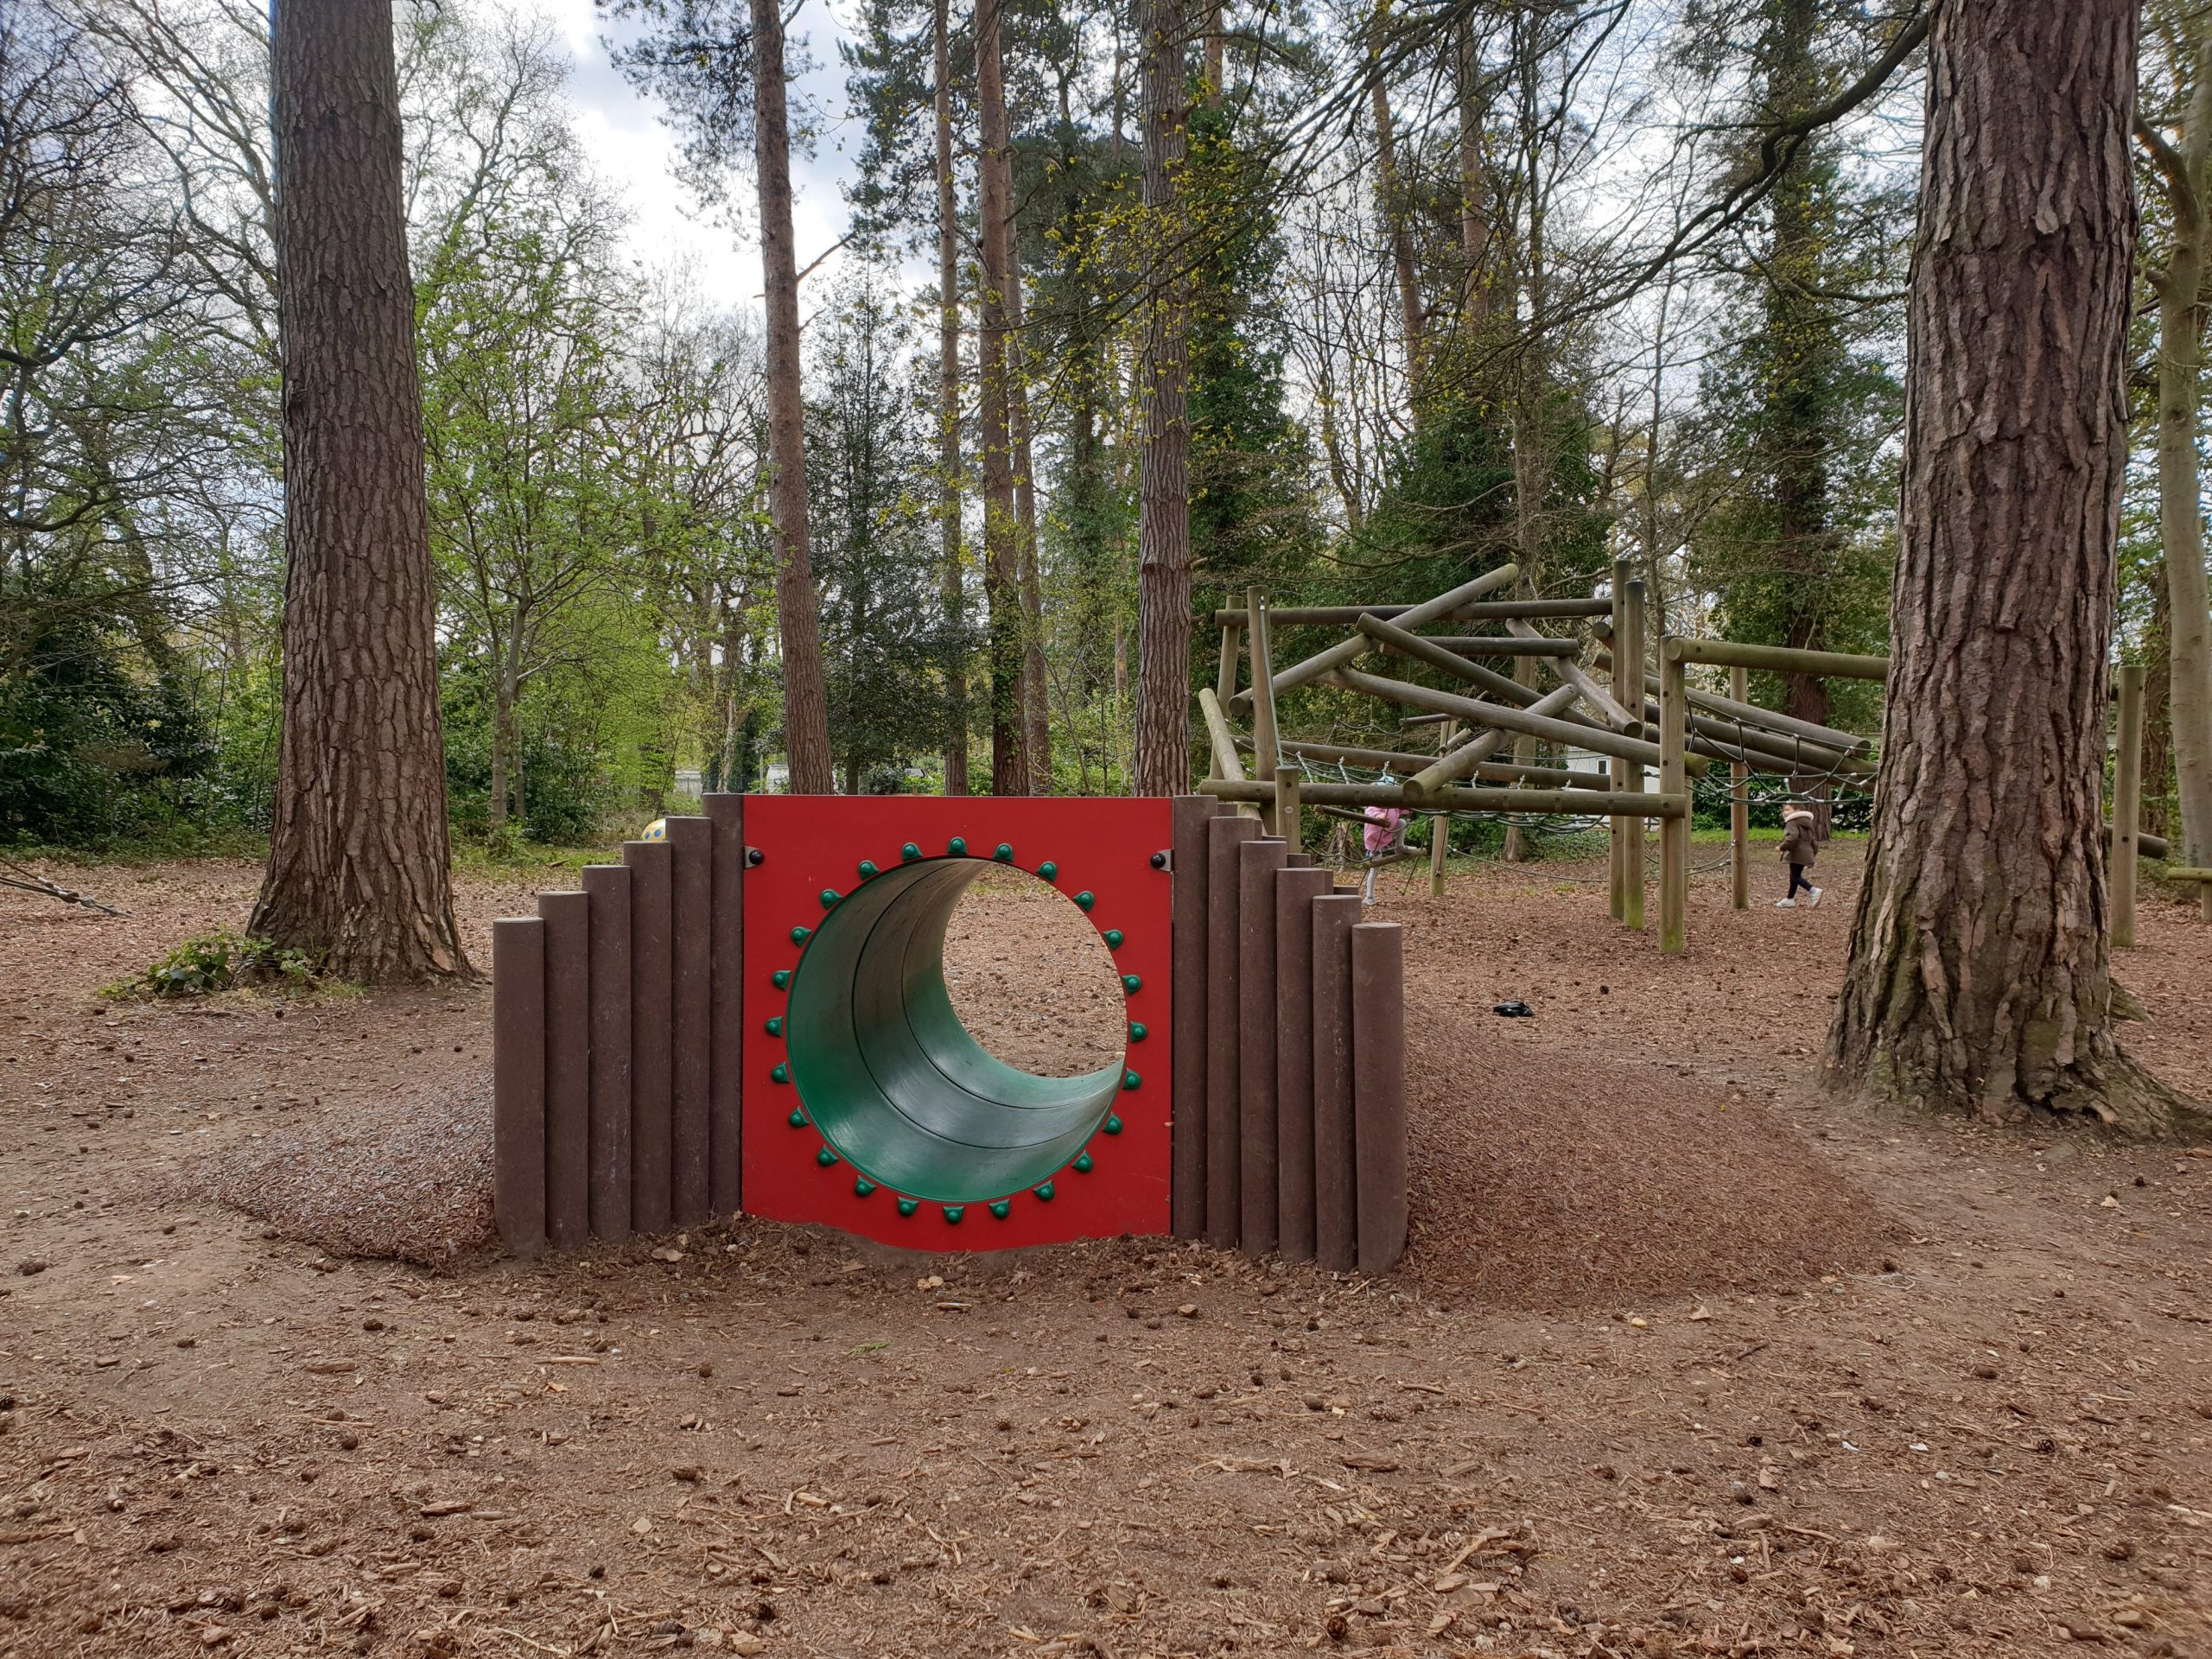 Free day out at Pinewood Adventure Park